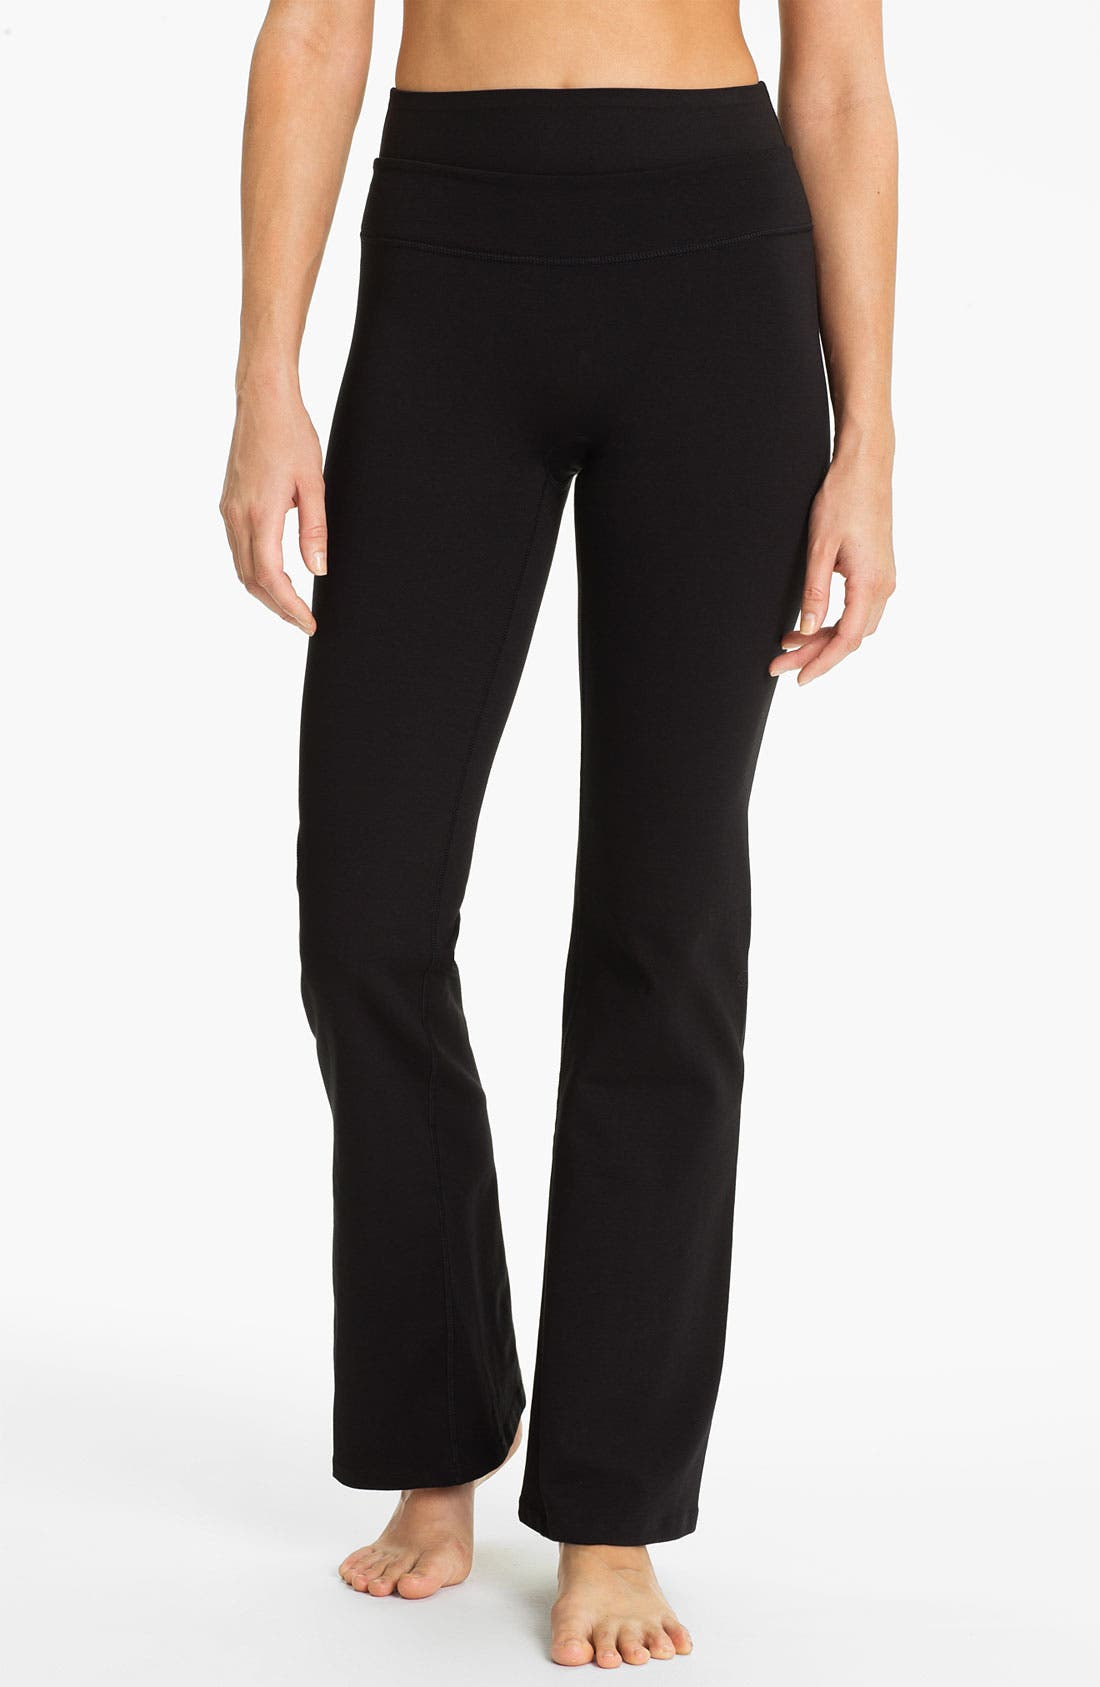 Main Image - SPANX® 'Power' Workout Pants